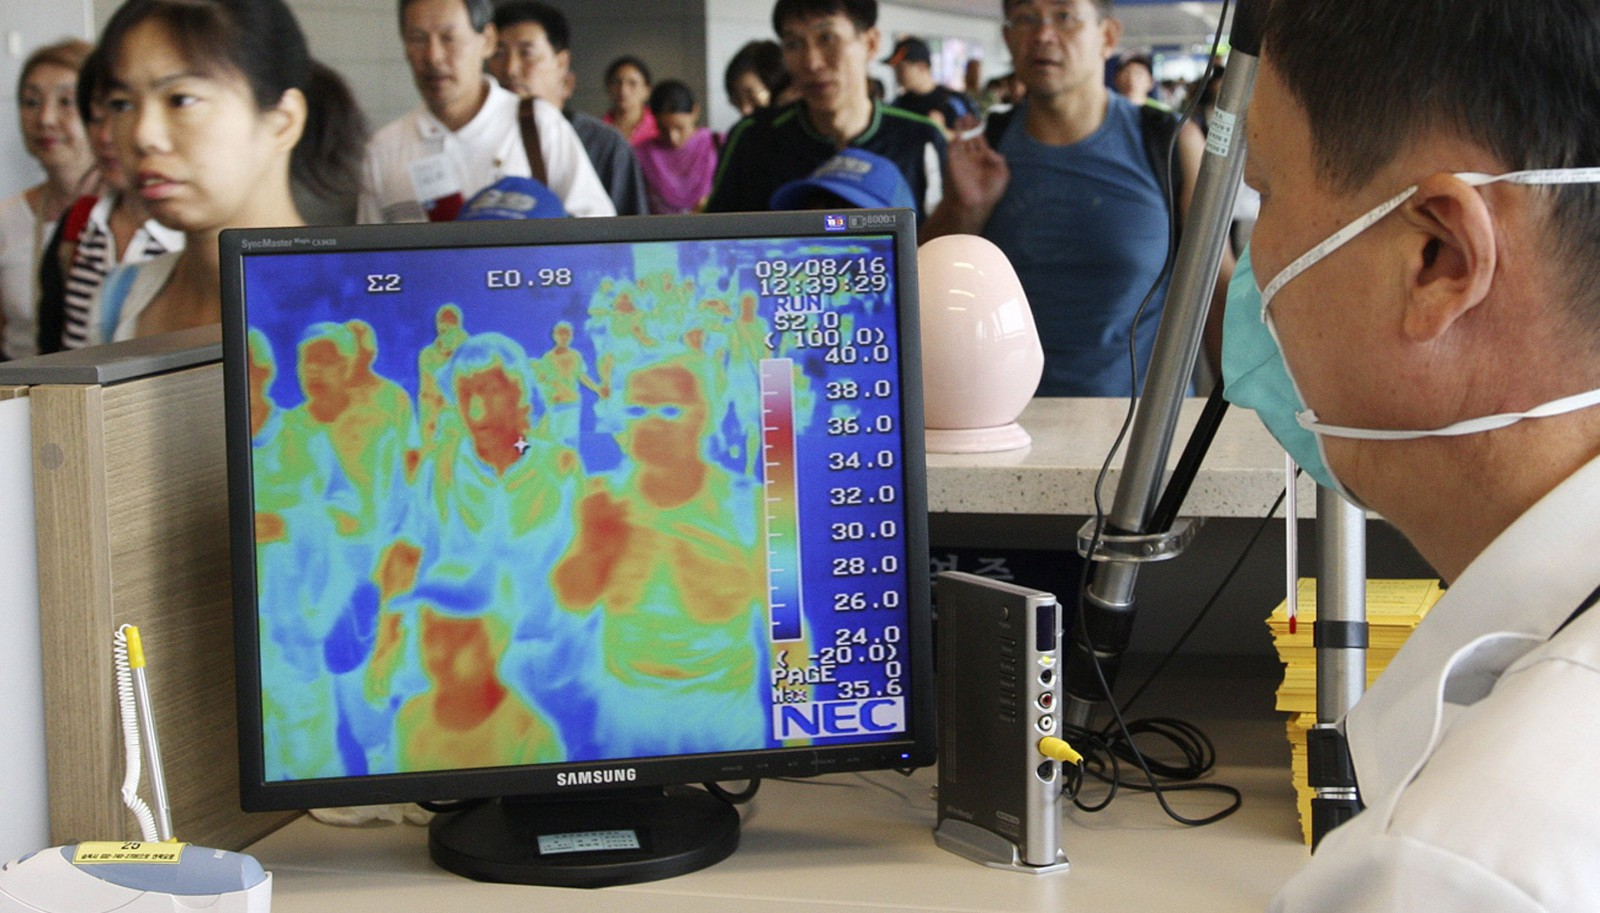 A South Korean quarantine officer checks a thermal camera monitoring the body temperature of passengers arriving from overseas against the possible infection of swine flu at Incheon International Airport in Incheon, west of Seoul, South Korea, Sunday, Aug. 16, 2009. South Korea says a woman infected with swine flu has died, becoming the country's second fatality linked to the virus.(AP Photo/Yonhap, Ahn Jung-hwan